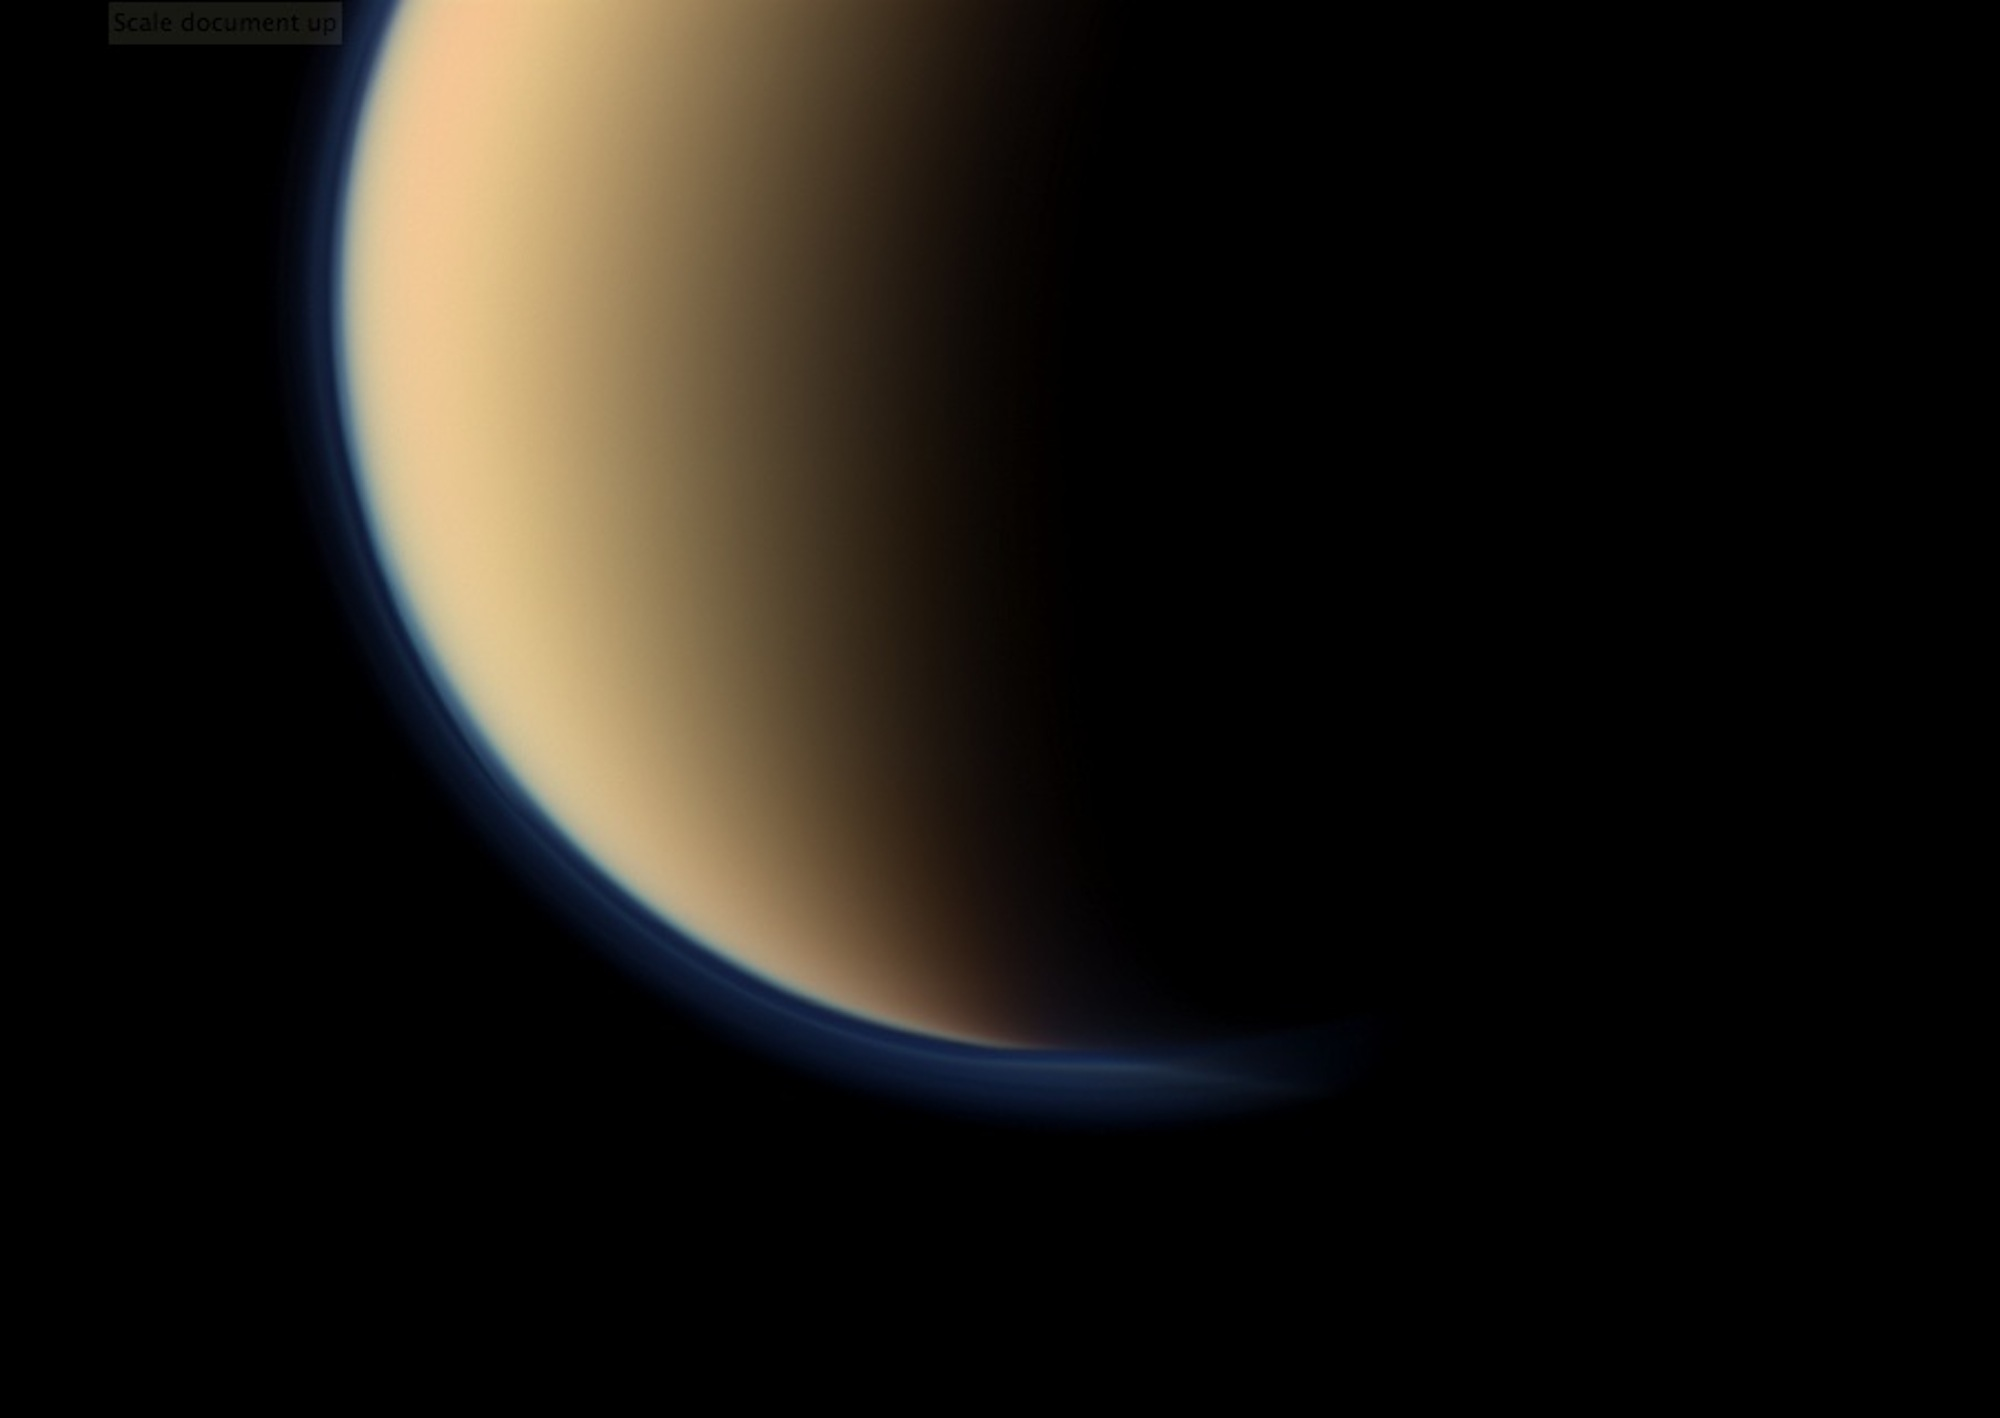 Saturn's Moon Titan May be More Earth-Like Than Thought ...